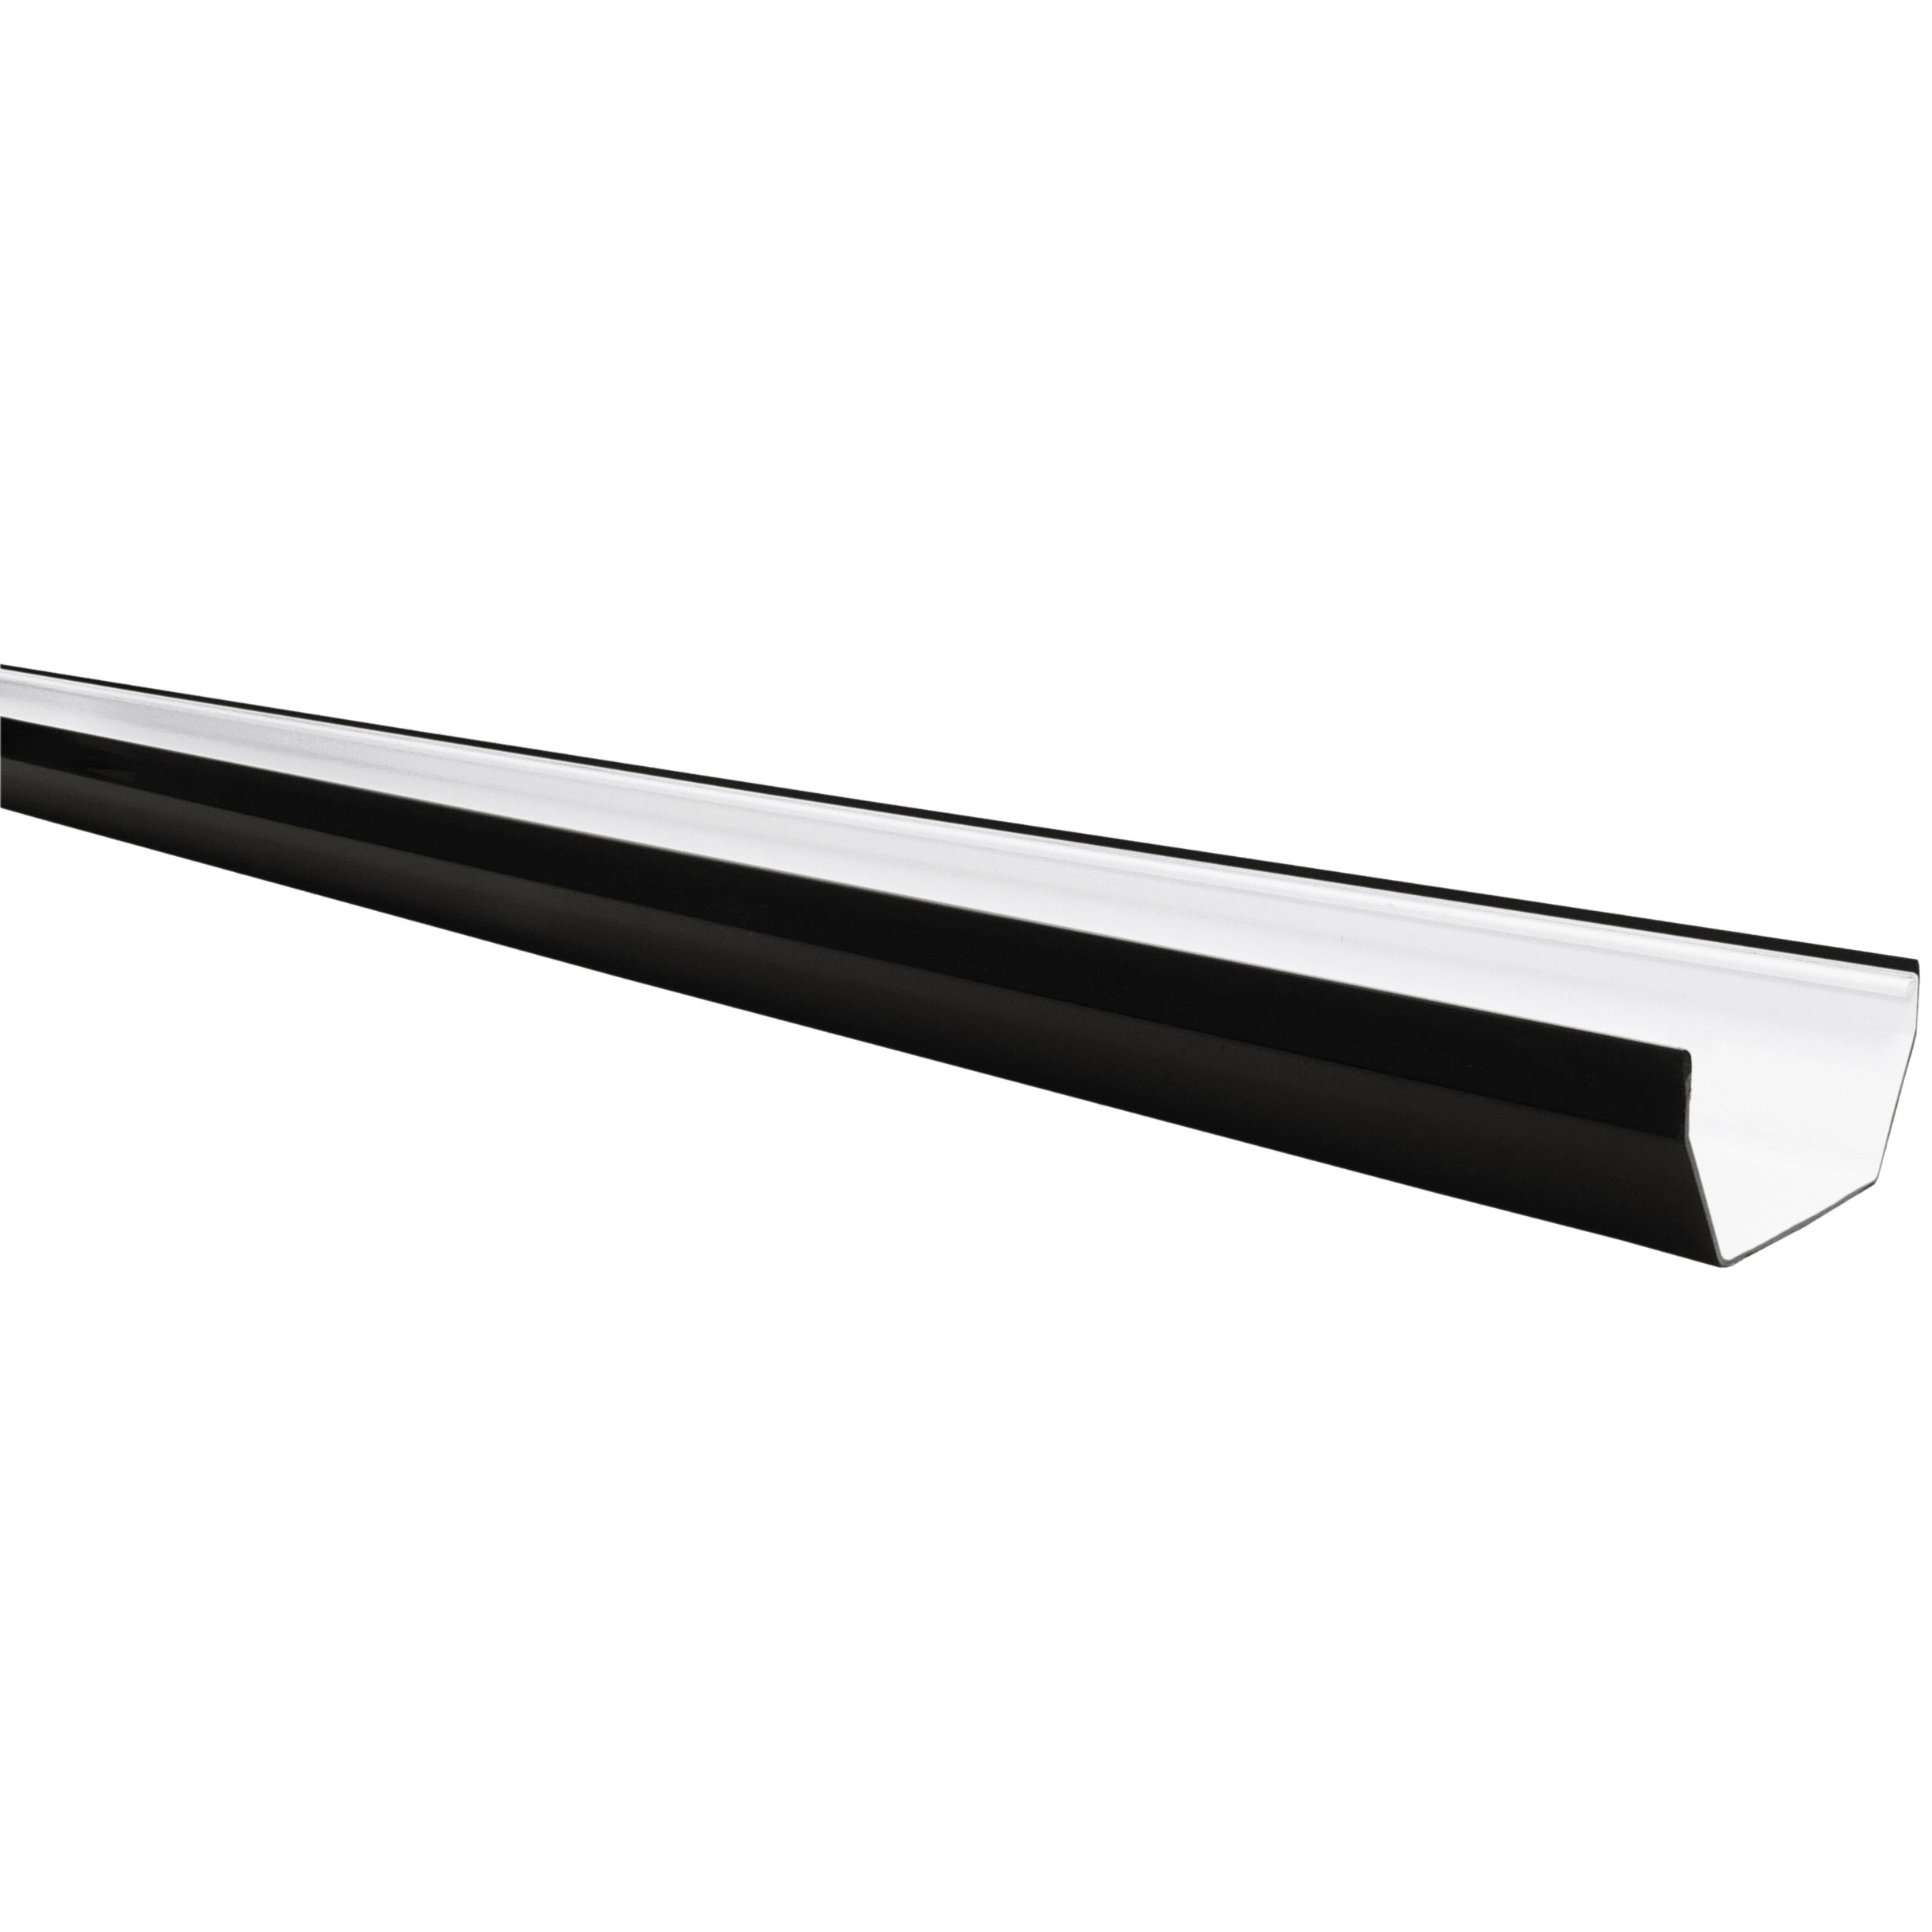 Freeflow 114mm Square Gutter - Black, 2 metre